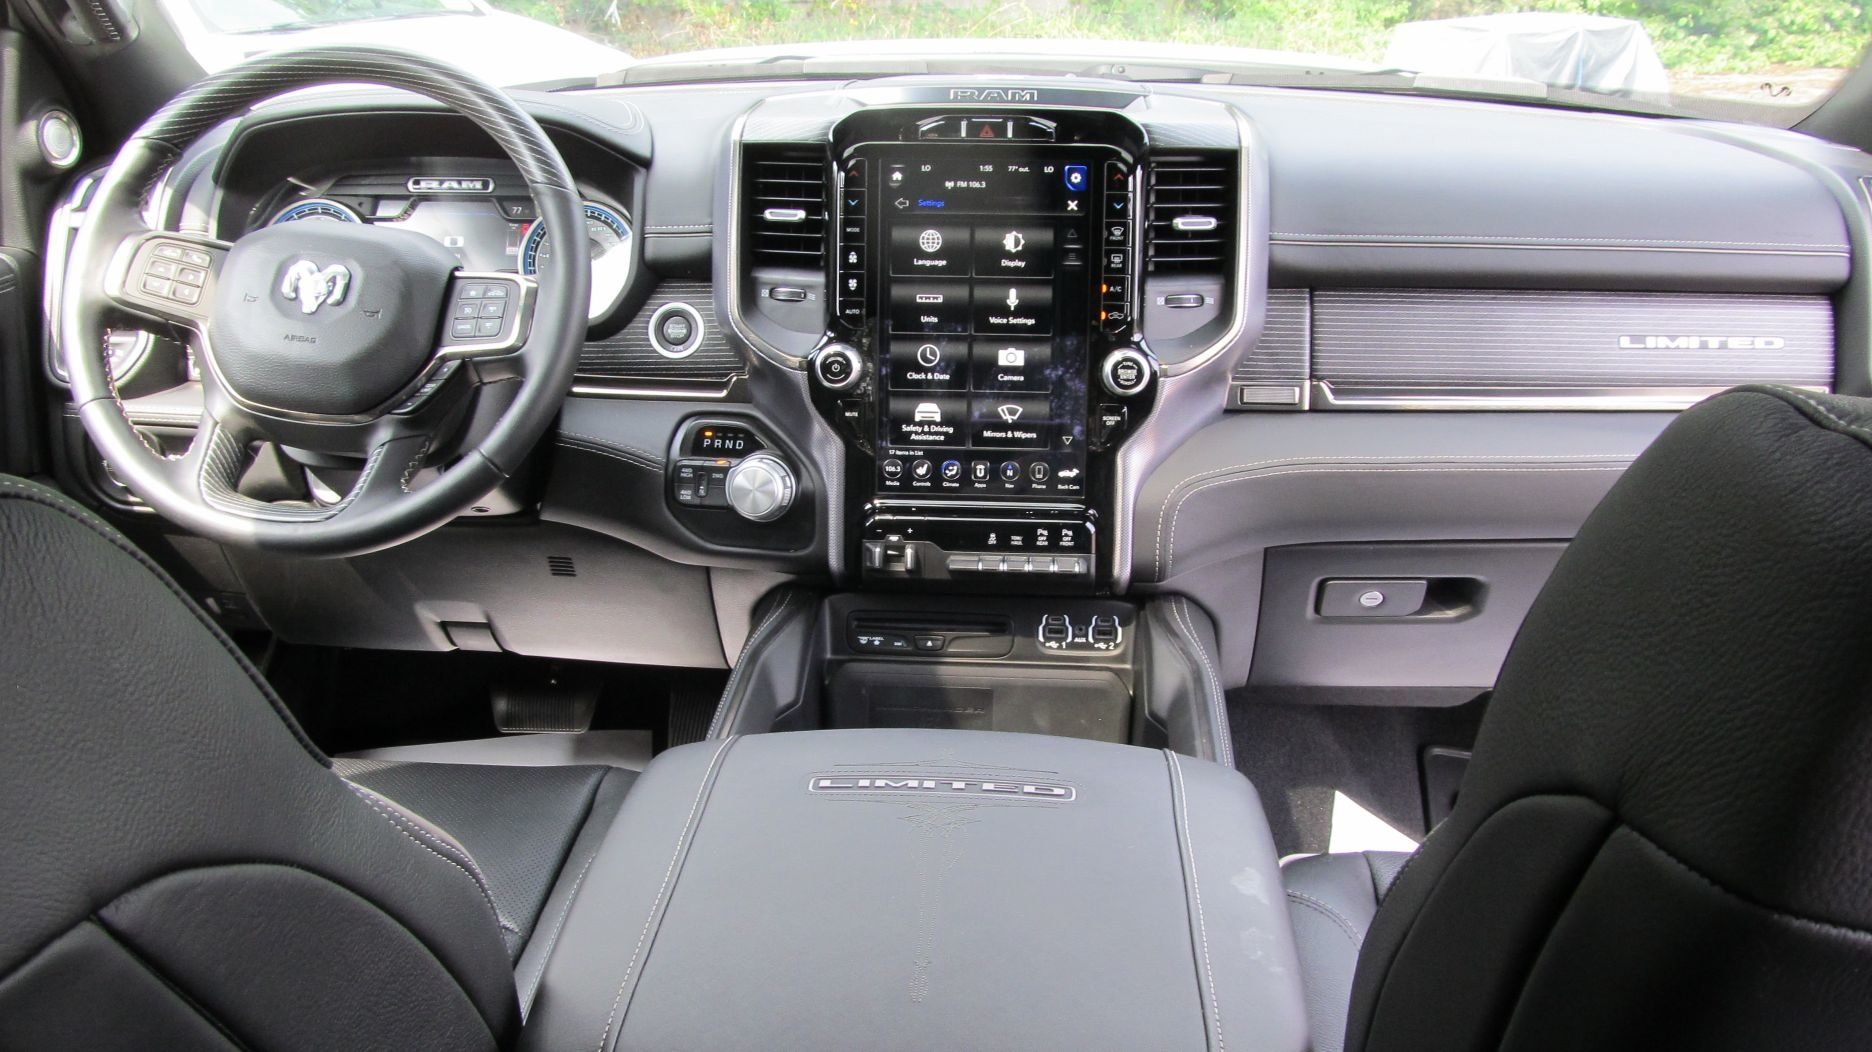 2020 Dodge RAM 2500 6.4L V8 LIMITED 4x4 Crew Cab For Sale (picture 3 of 6)